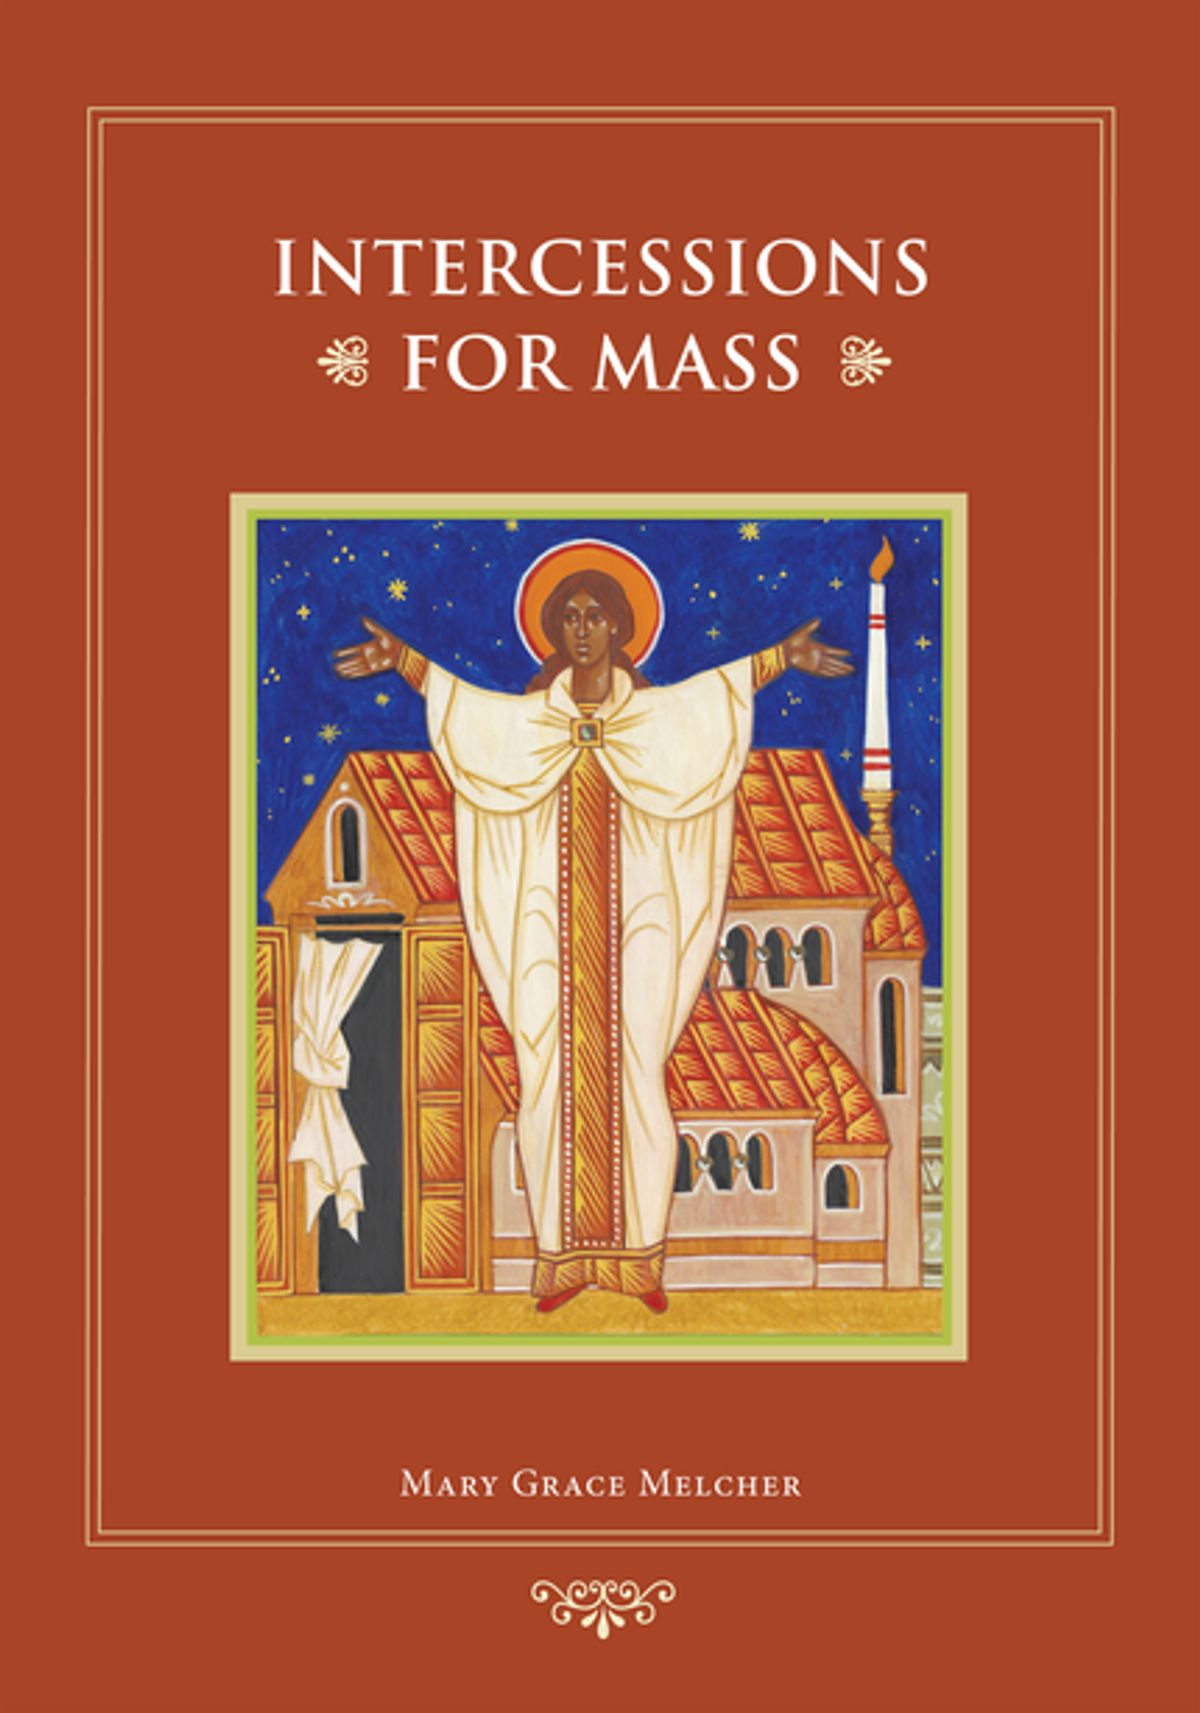 Intercessions For Mass Ebook By Mary Grace Melcher Ocd - Rakuten Kobo